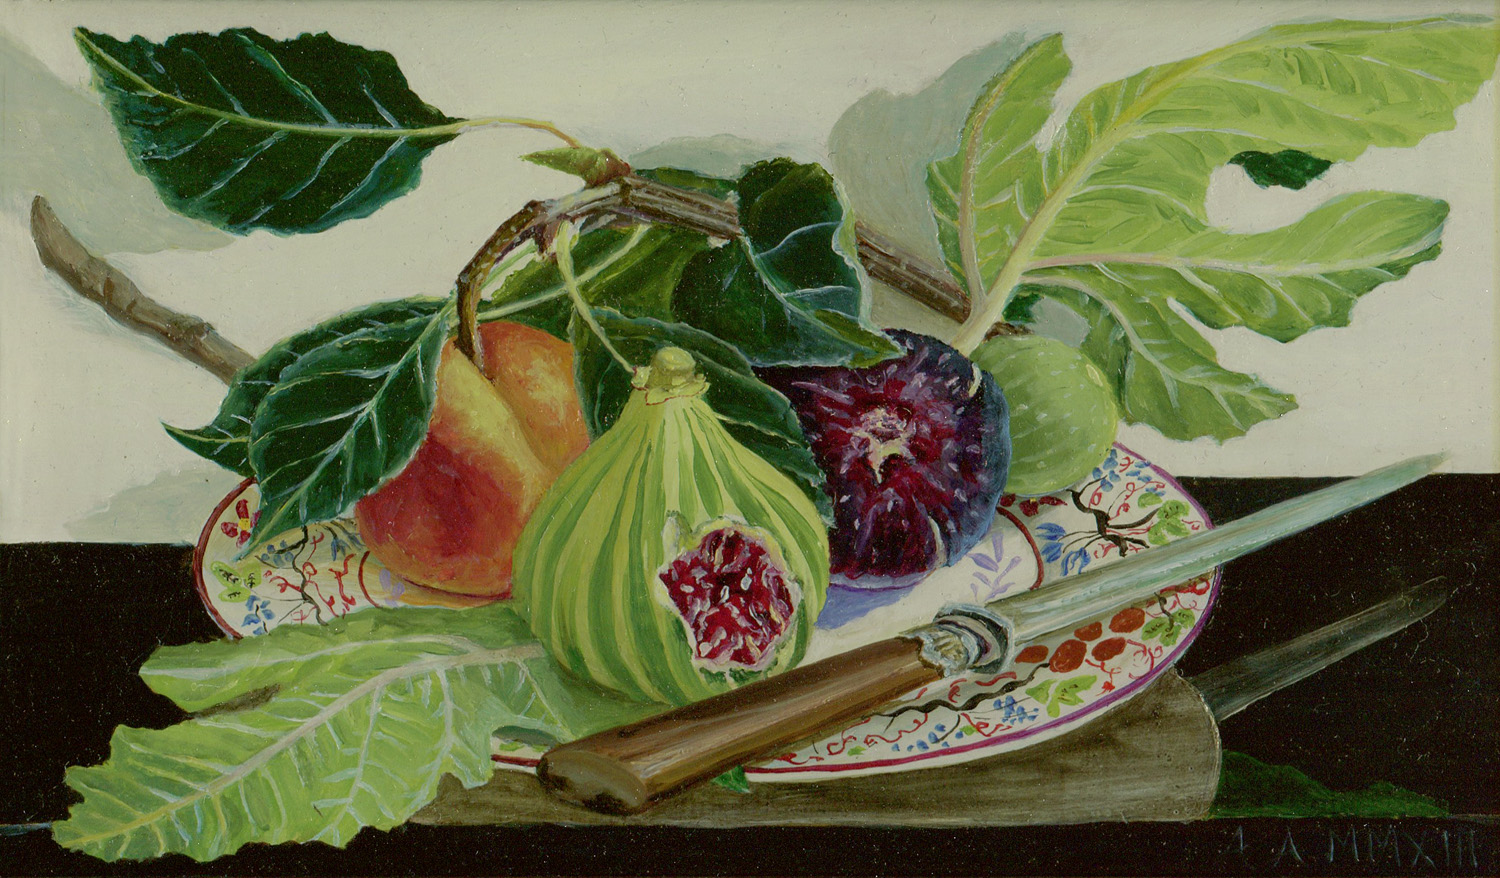 Ann Arnold,  Figs, 2014   Oil on fruitwood panel  Prints of some of Ann Arnold's watercolors are available in the  Shop